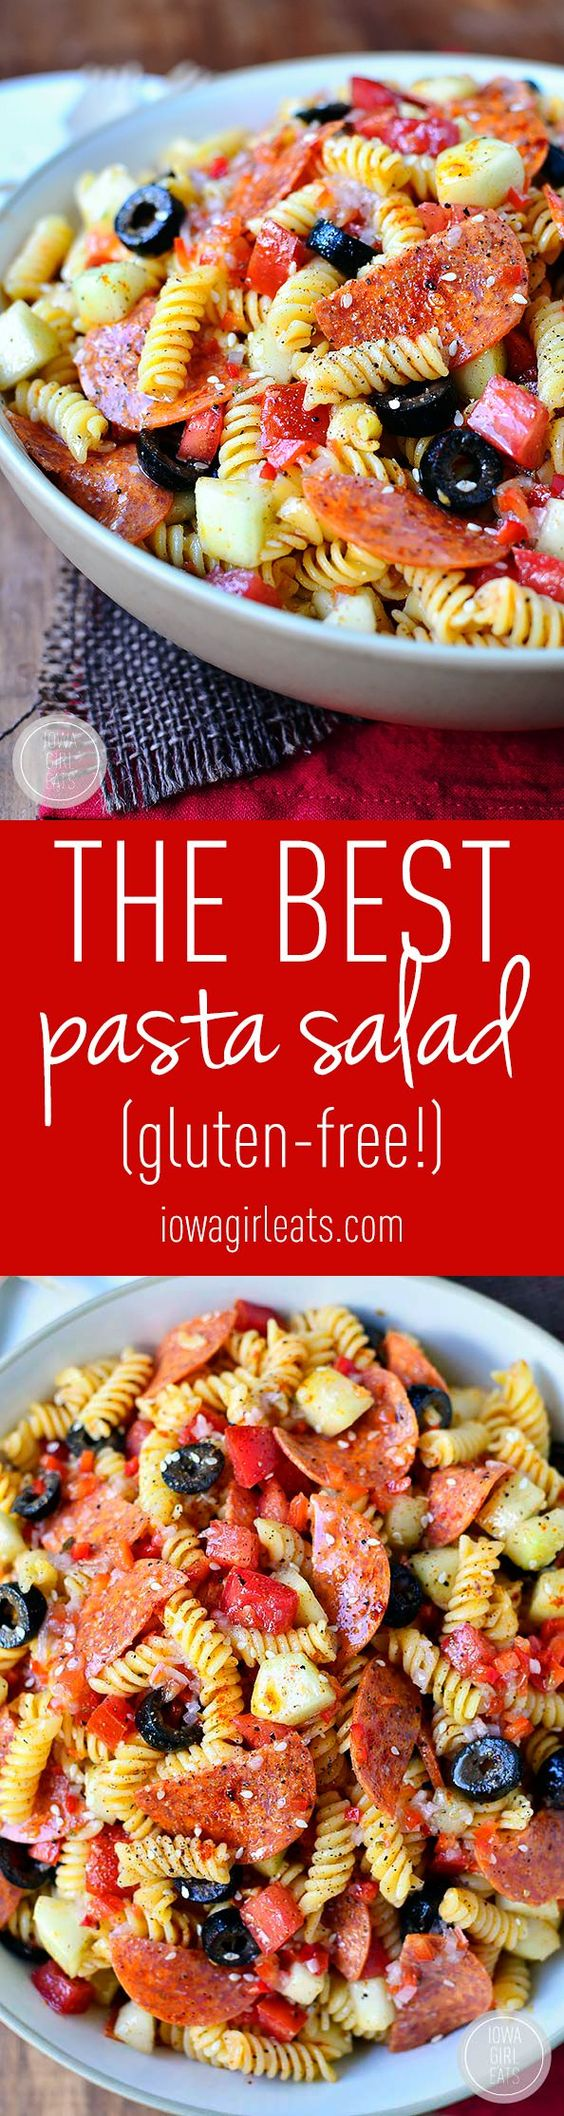 "The BEST Pasta Salad Recipe via Iowa Girl Eats - This ""is an old family recipe. Simple and simply the best (easily made gluten-free, too!)"" Easy Pasta Salad Recipes - The BEST Yummy Barbecue Side Dishes, Potluck Favorites and Summer Dinner Party Crowd Pleasers #pastasaladrecipes #pastasalads #pastasalad #easypastasalad #potluckrecipes #potluck #partyfood #4thofJuly #picnicfood #sidedishrecipes #easysidedishes #cookoutfood #barbecuefood #blockparty"